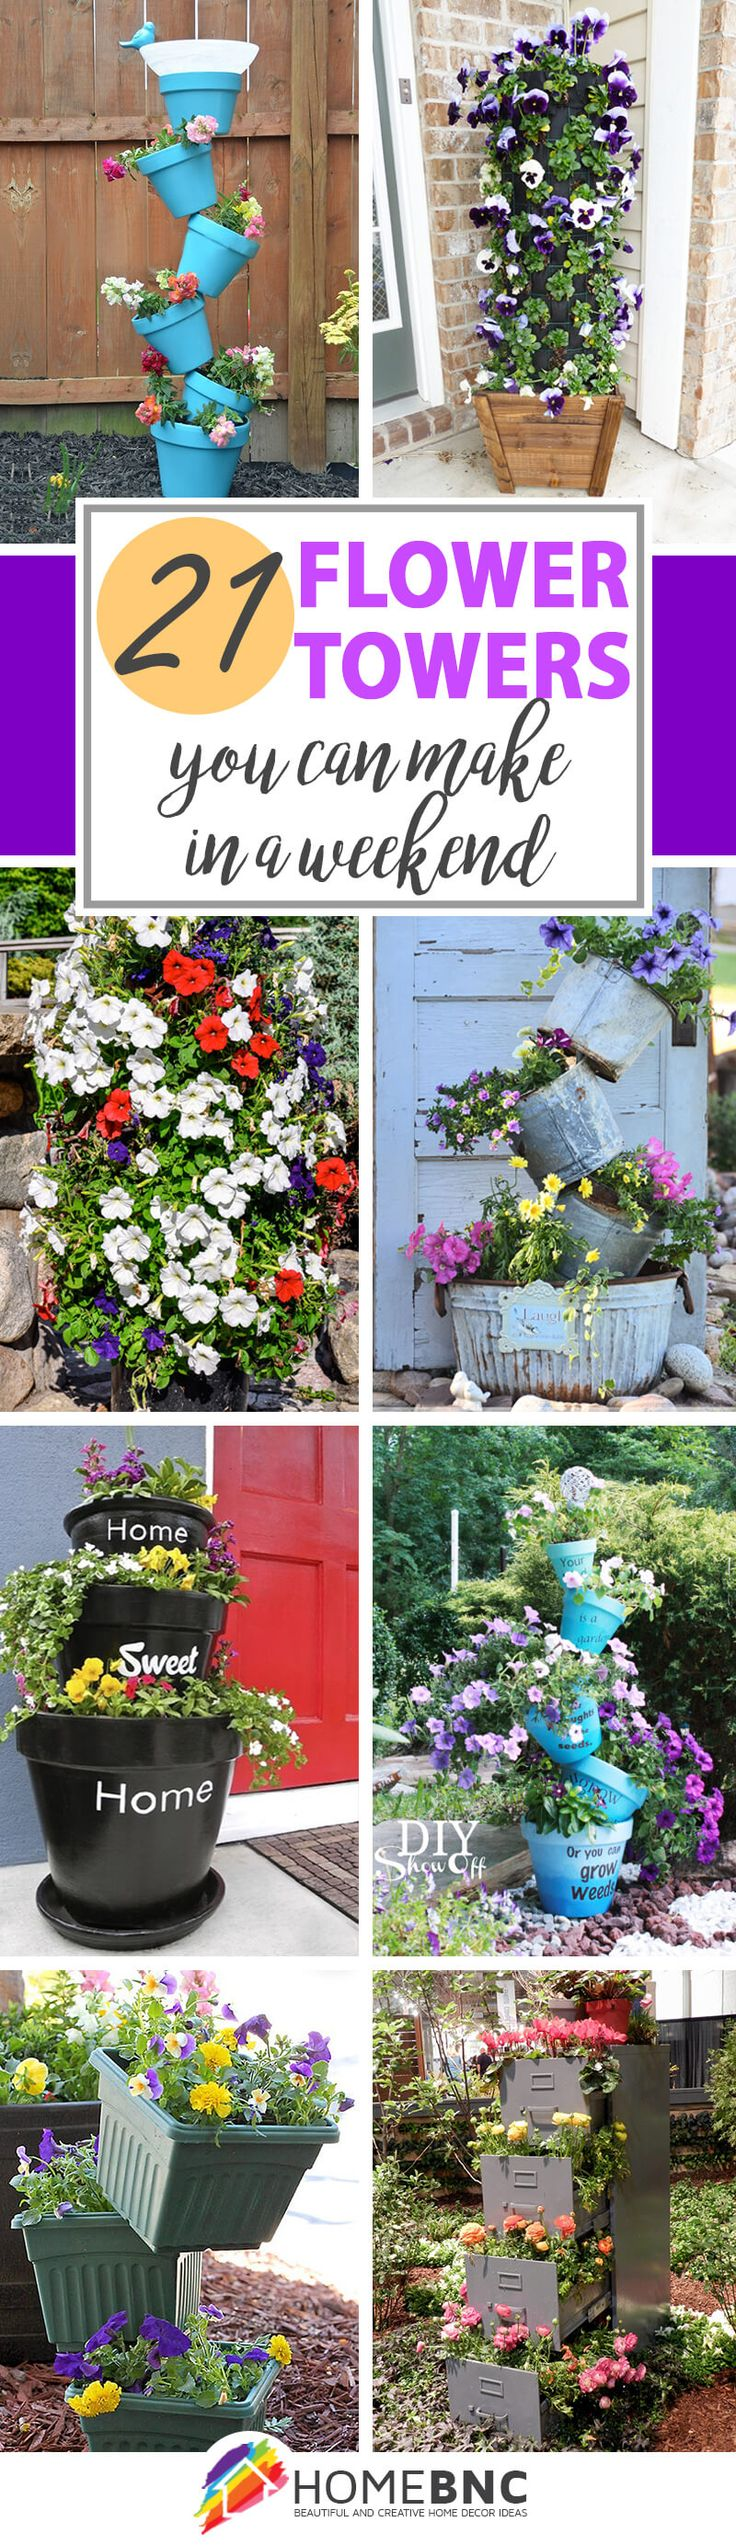 DIY Flower Tower Ideas--BY HOMEBNC  Flower towers are a great way to add some color, and the height really helps you maximize your space. They're perfect for those who have smaller yards or who don't want to spend a lot of time caring for a big garden.